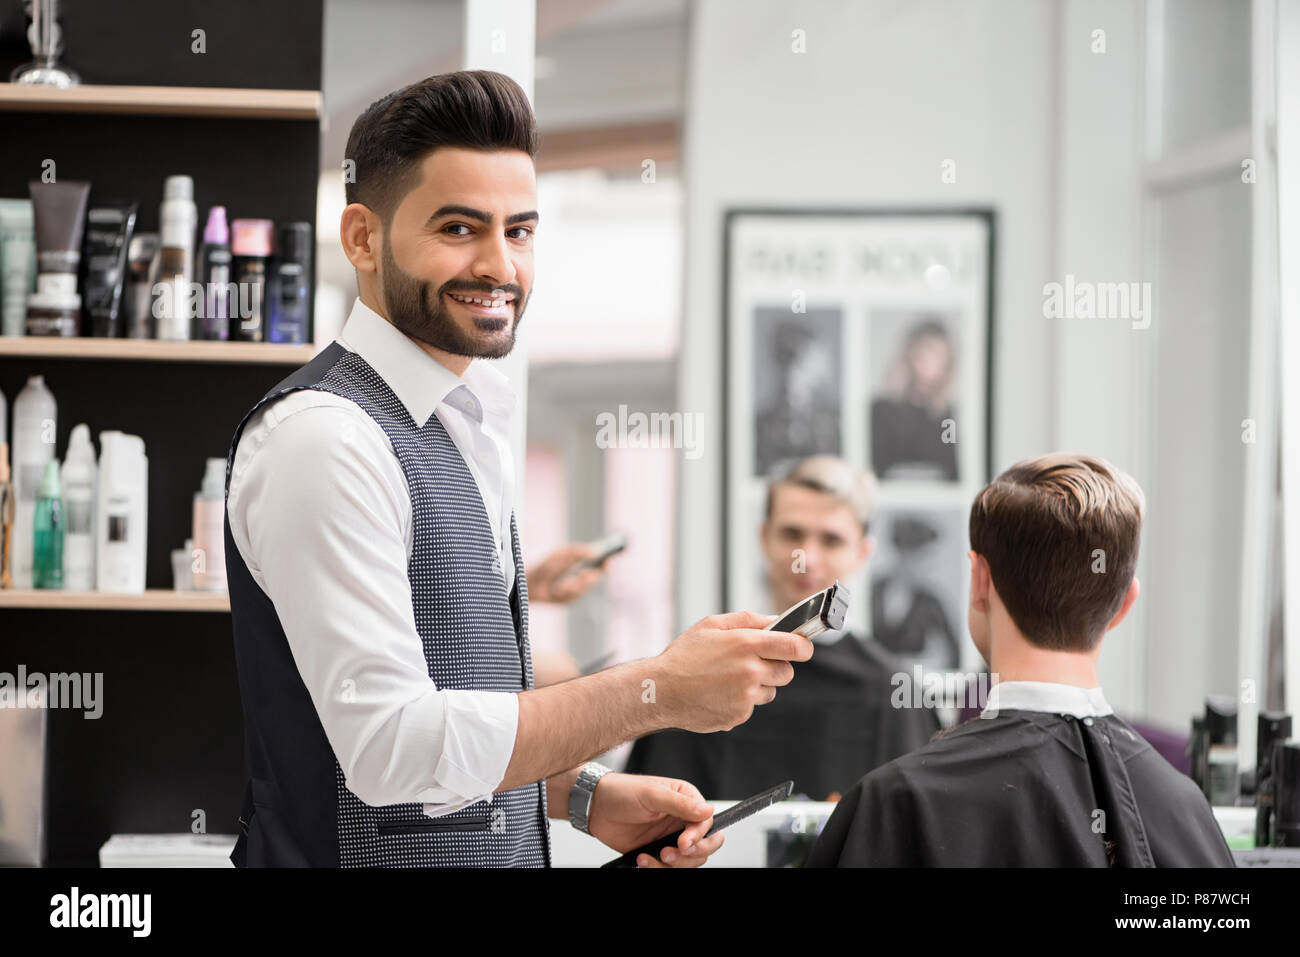 Smiling barber making hairdress for young client in barbershop. Hairdresser holding sharp scissors and plastic comb, wearing white shirt, grey waistco - Stock Image